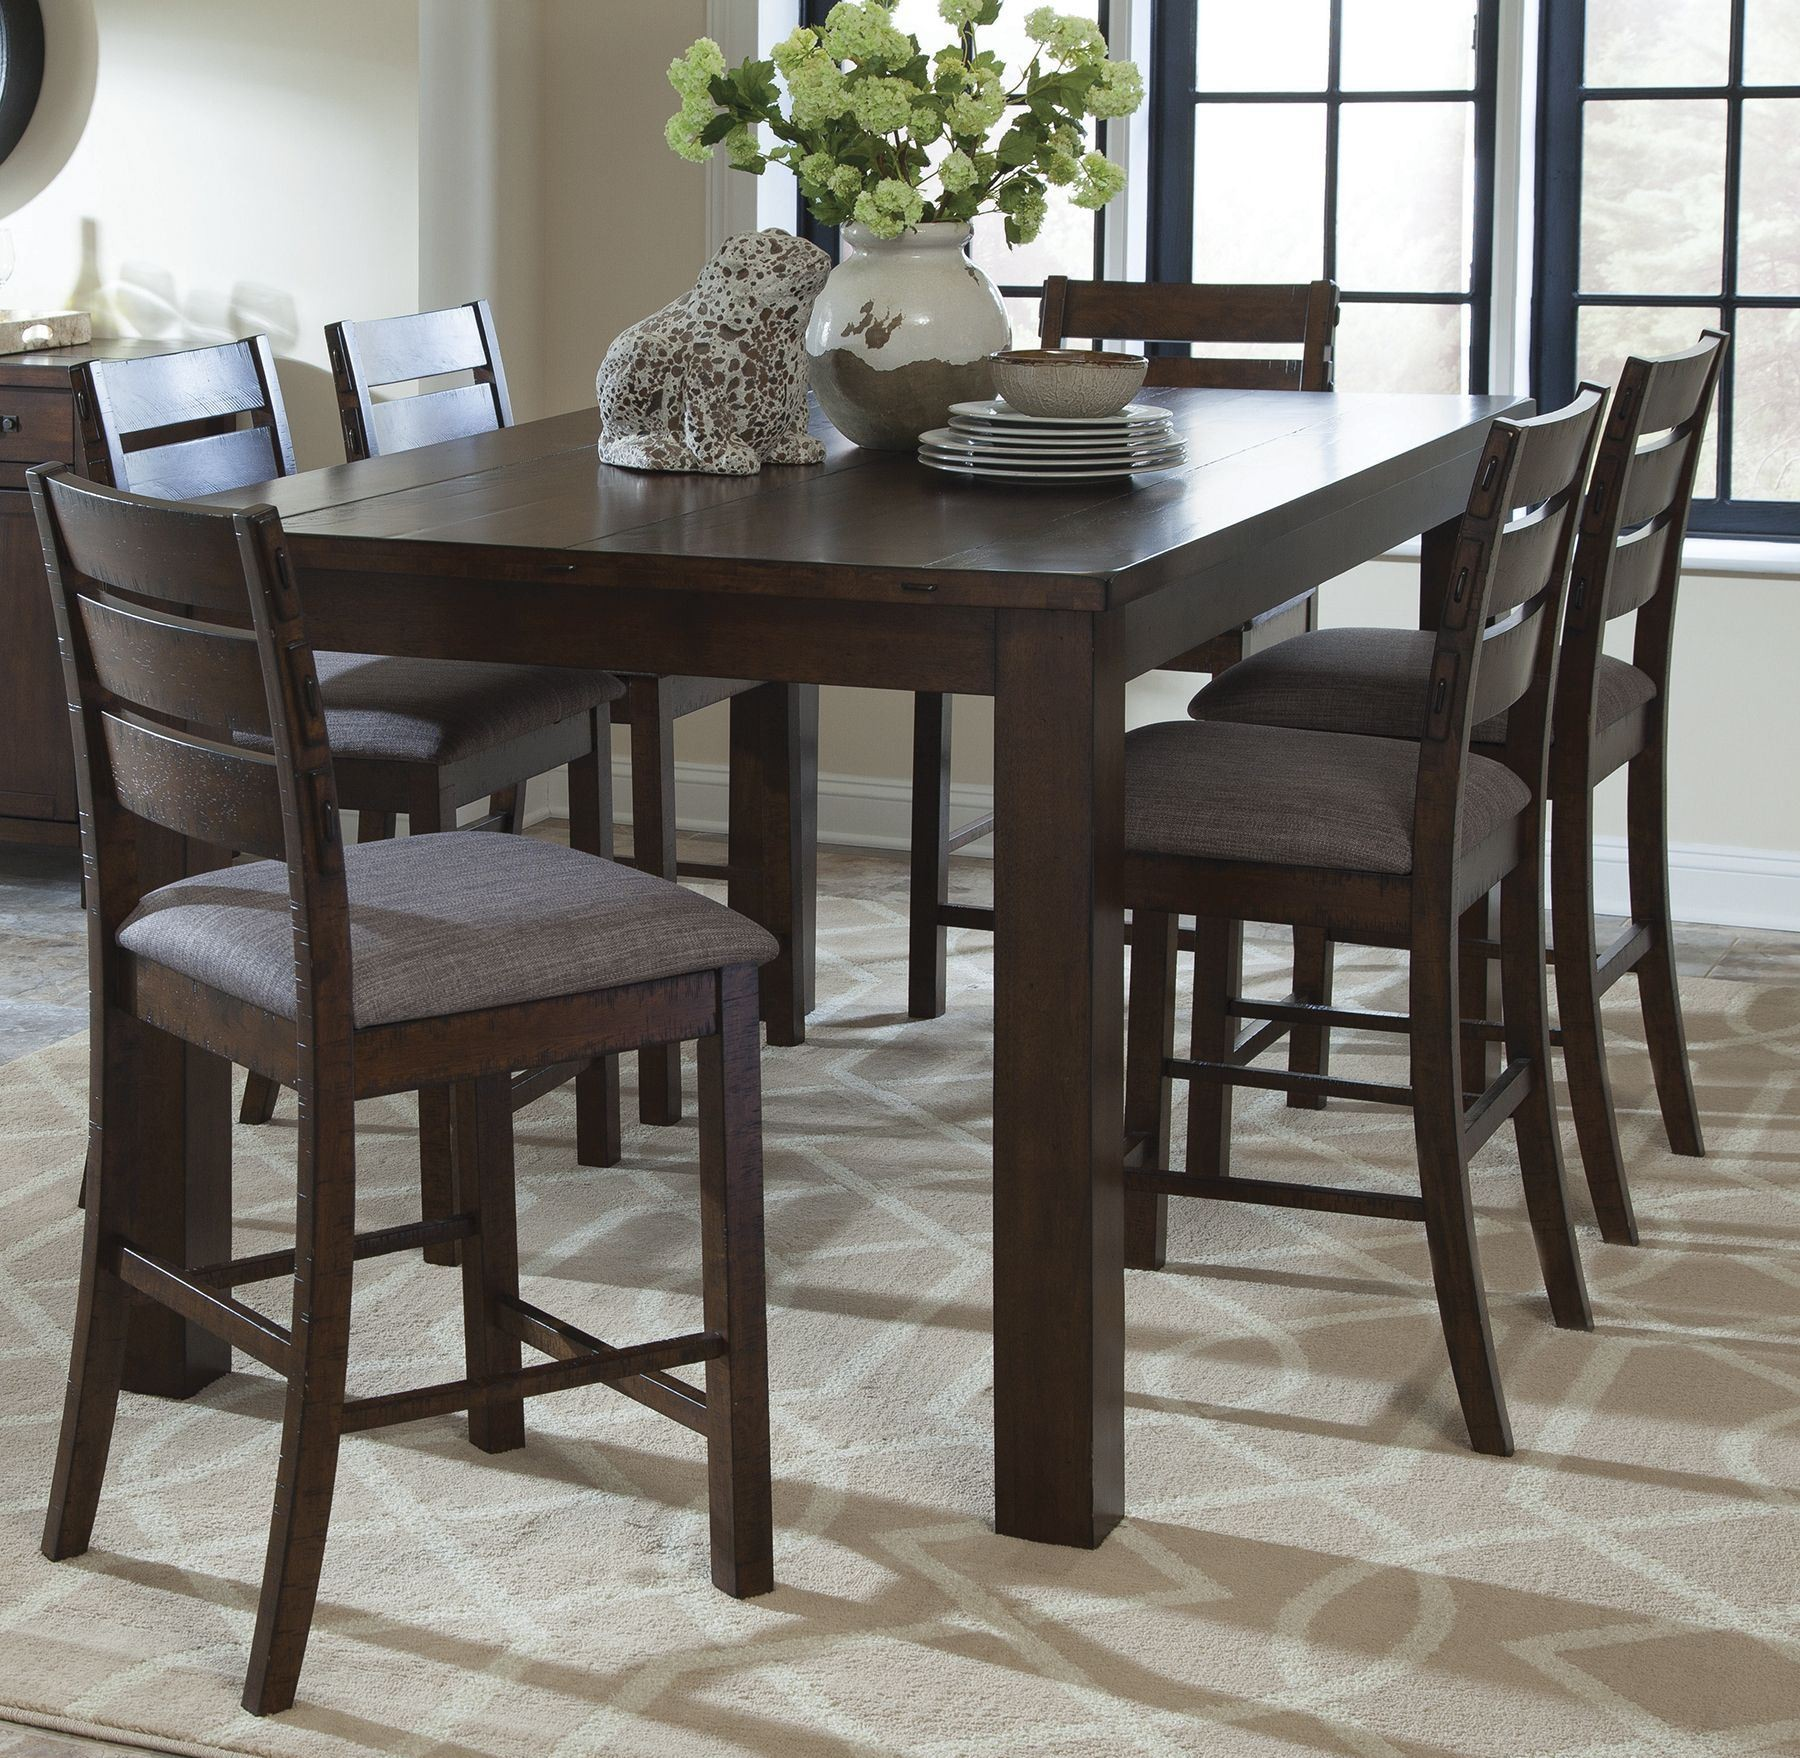 Counter Height Rustic Dining Sets : Wilshire Rustic Pecan Counter Height Dining Room Set, 106368, Coaster ...